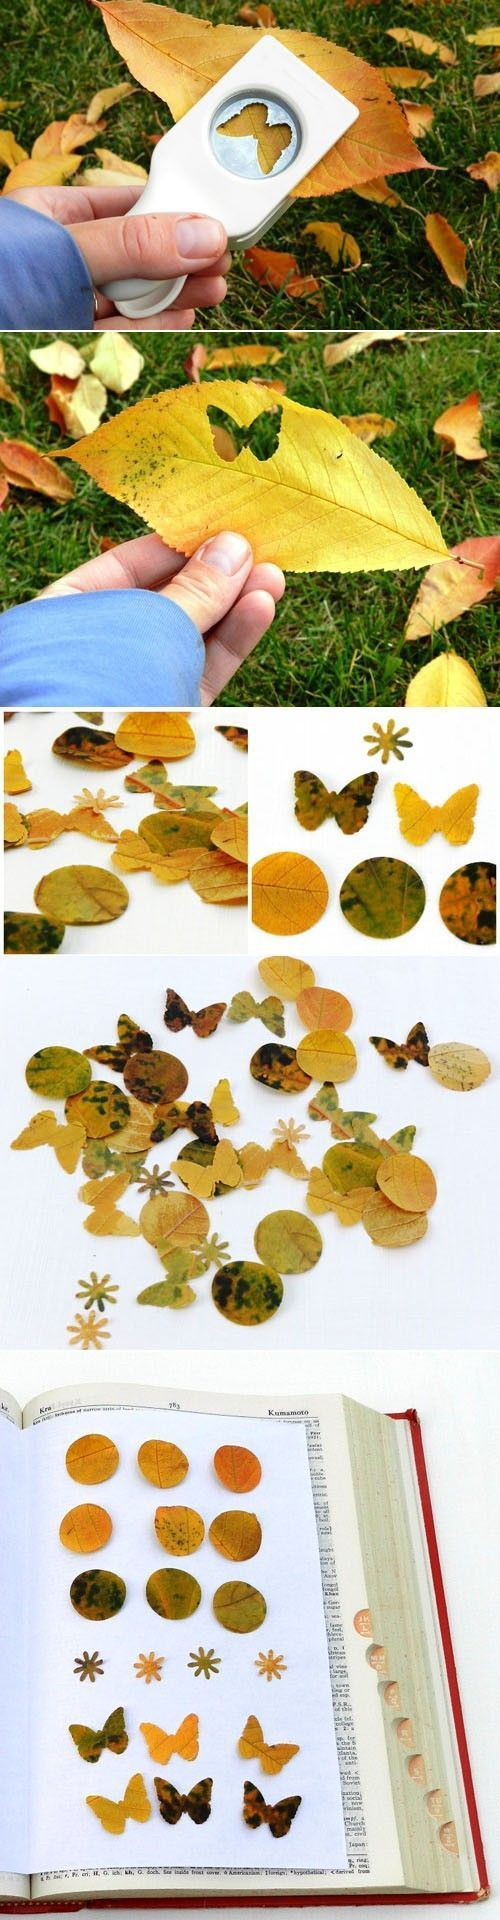 This is awesome! Punching shapes from autumn leaves.... great new use of natural art materials #nature_crafts_kindergarten